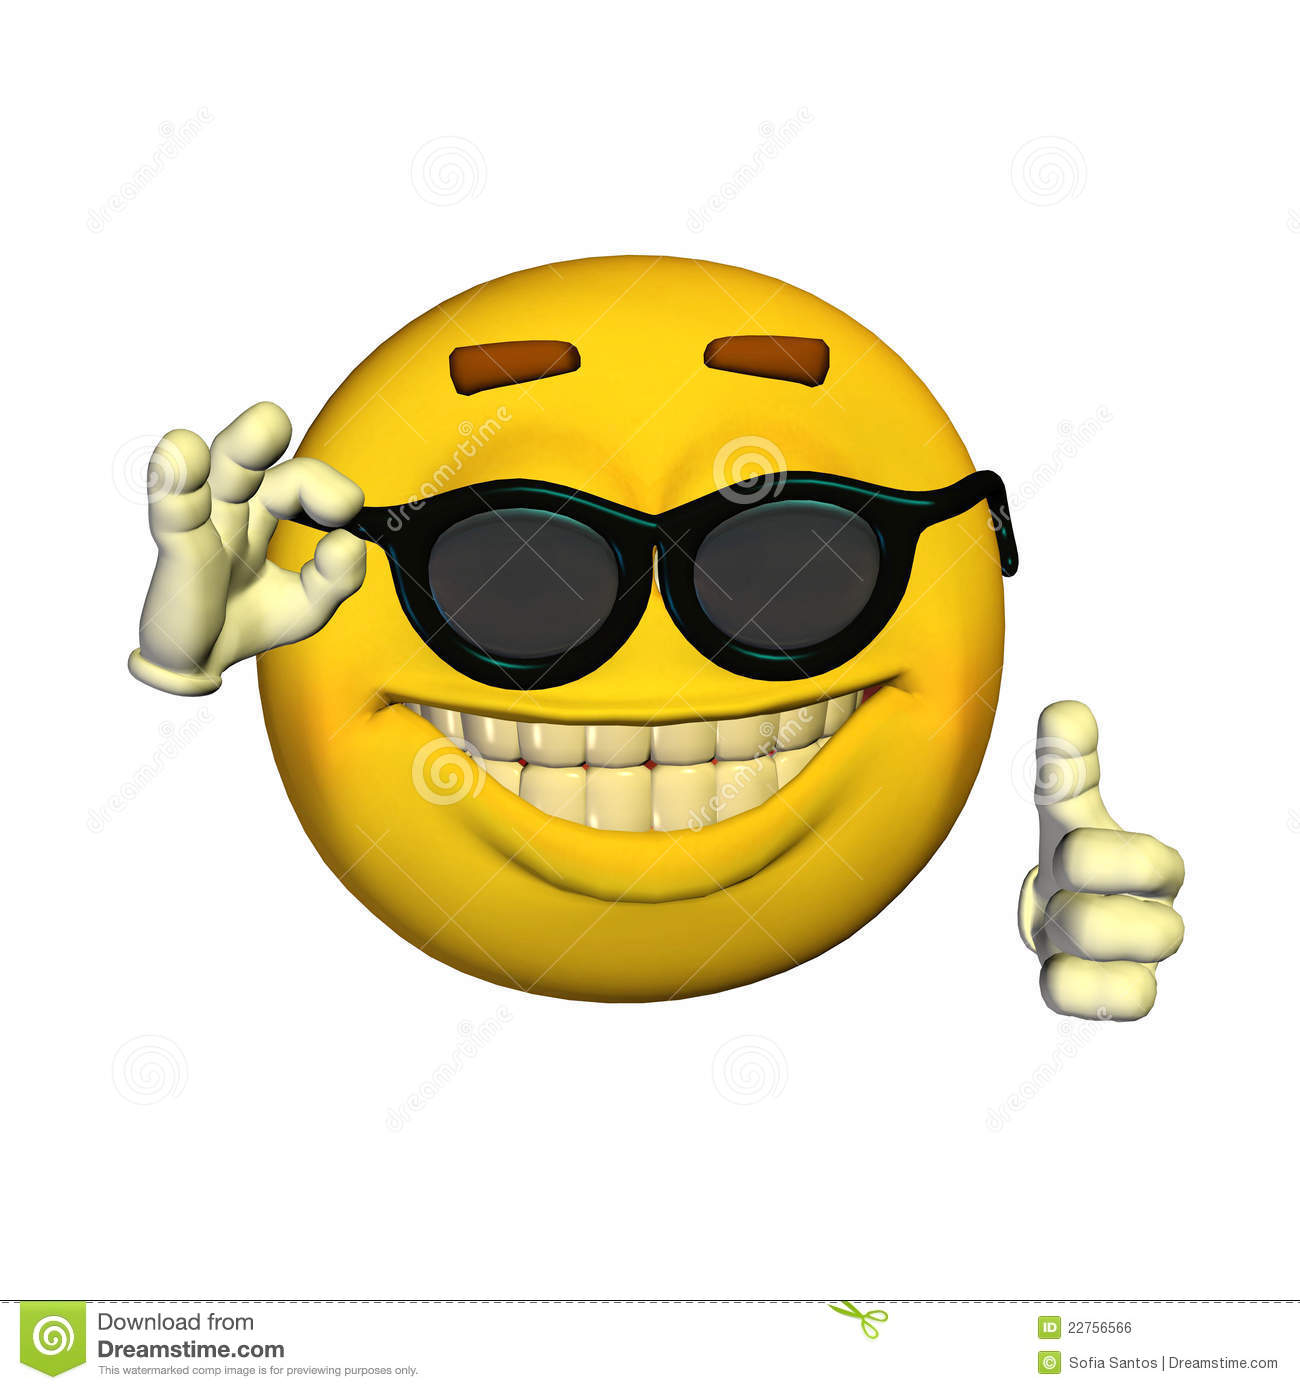 Cool Smiley Face Thumbs Up Emoticon - Zonnebril s...